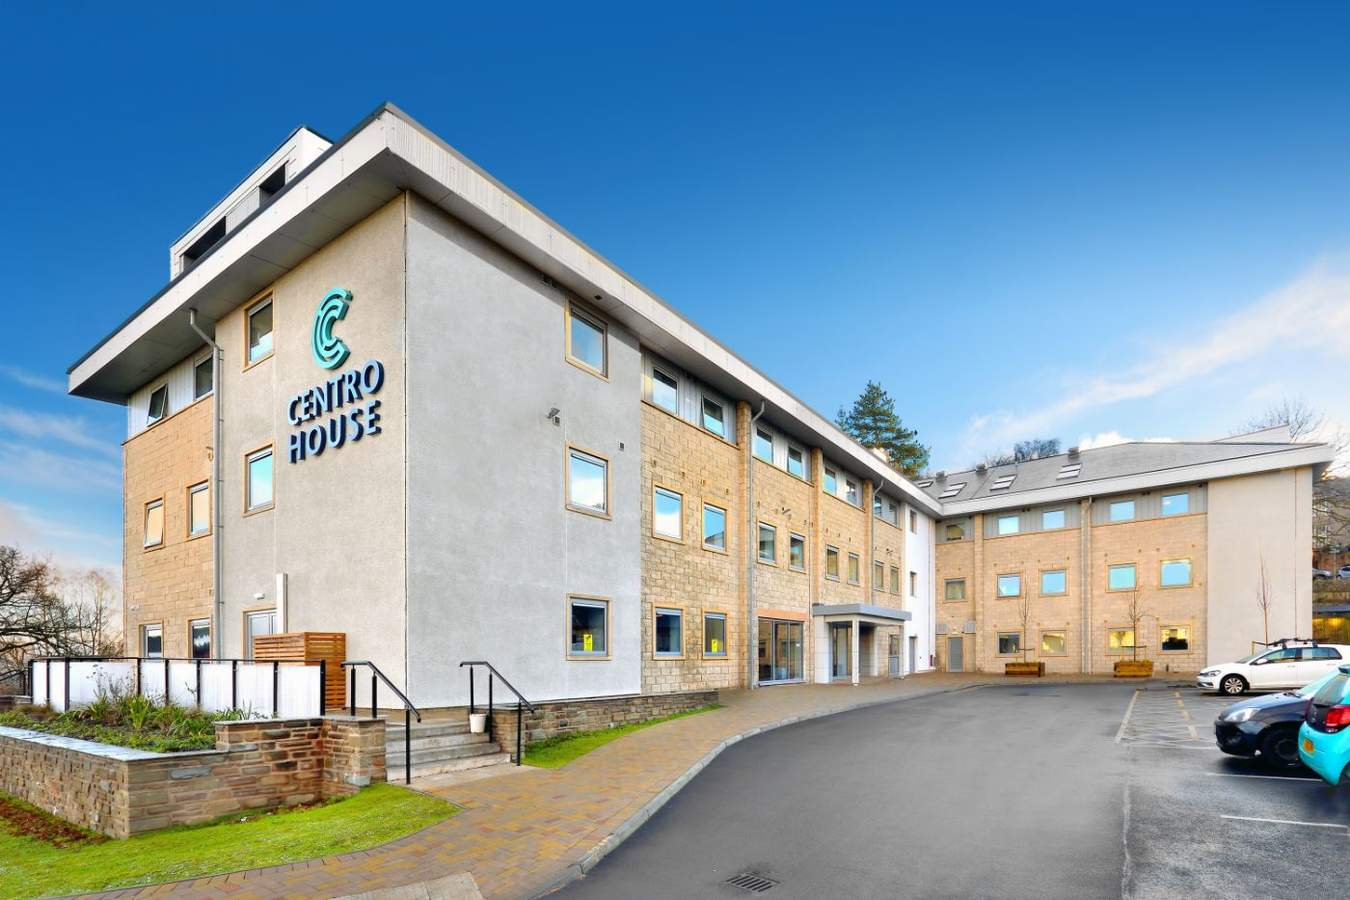 Centro-house-student-accommodation-stirling-exterior-1